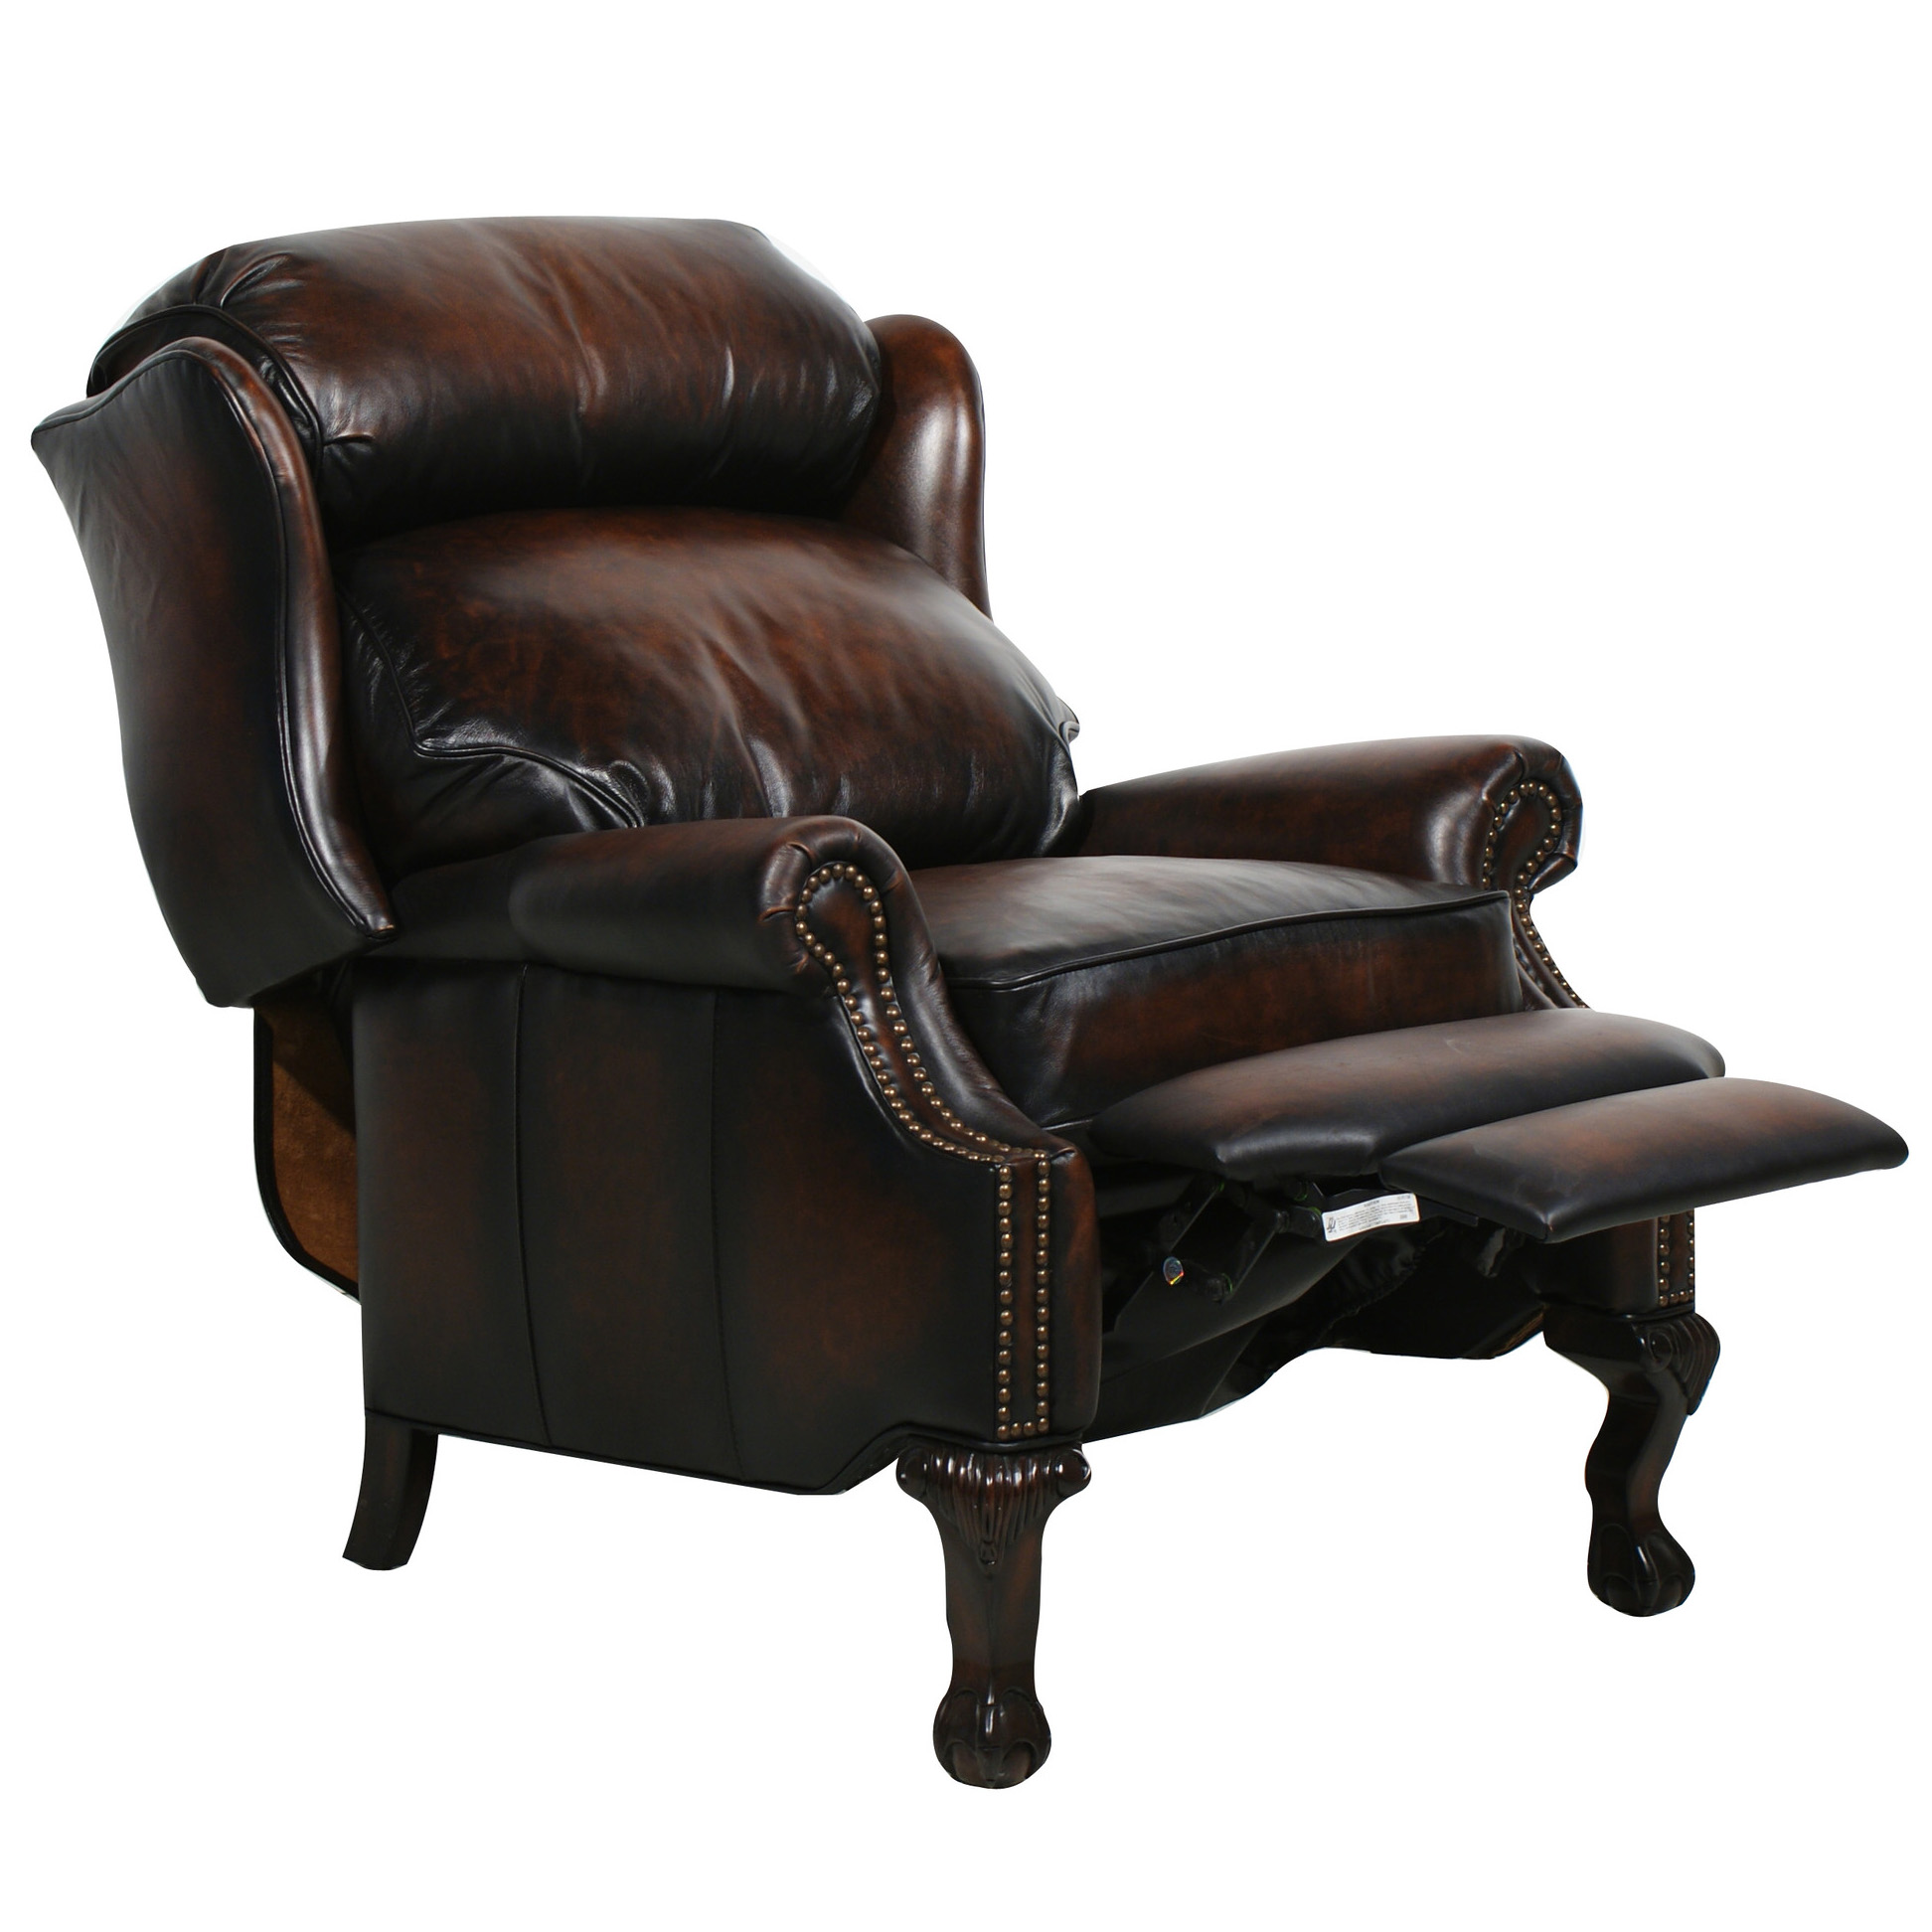 Exceptionnel Barcalounger Danbury II Recliner Chair